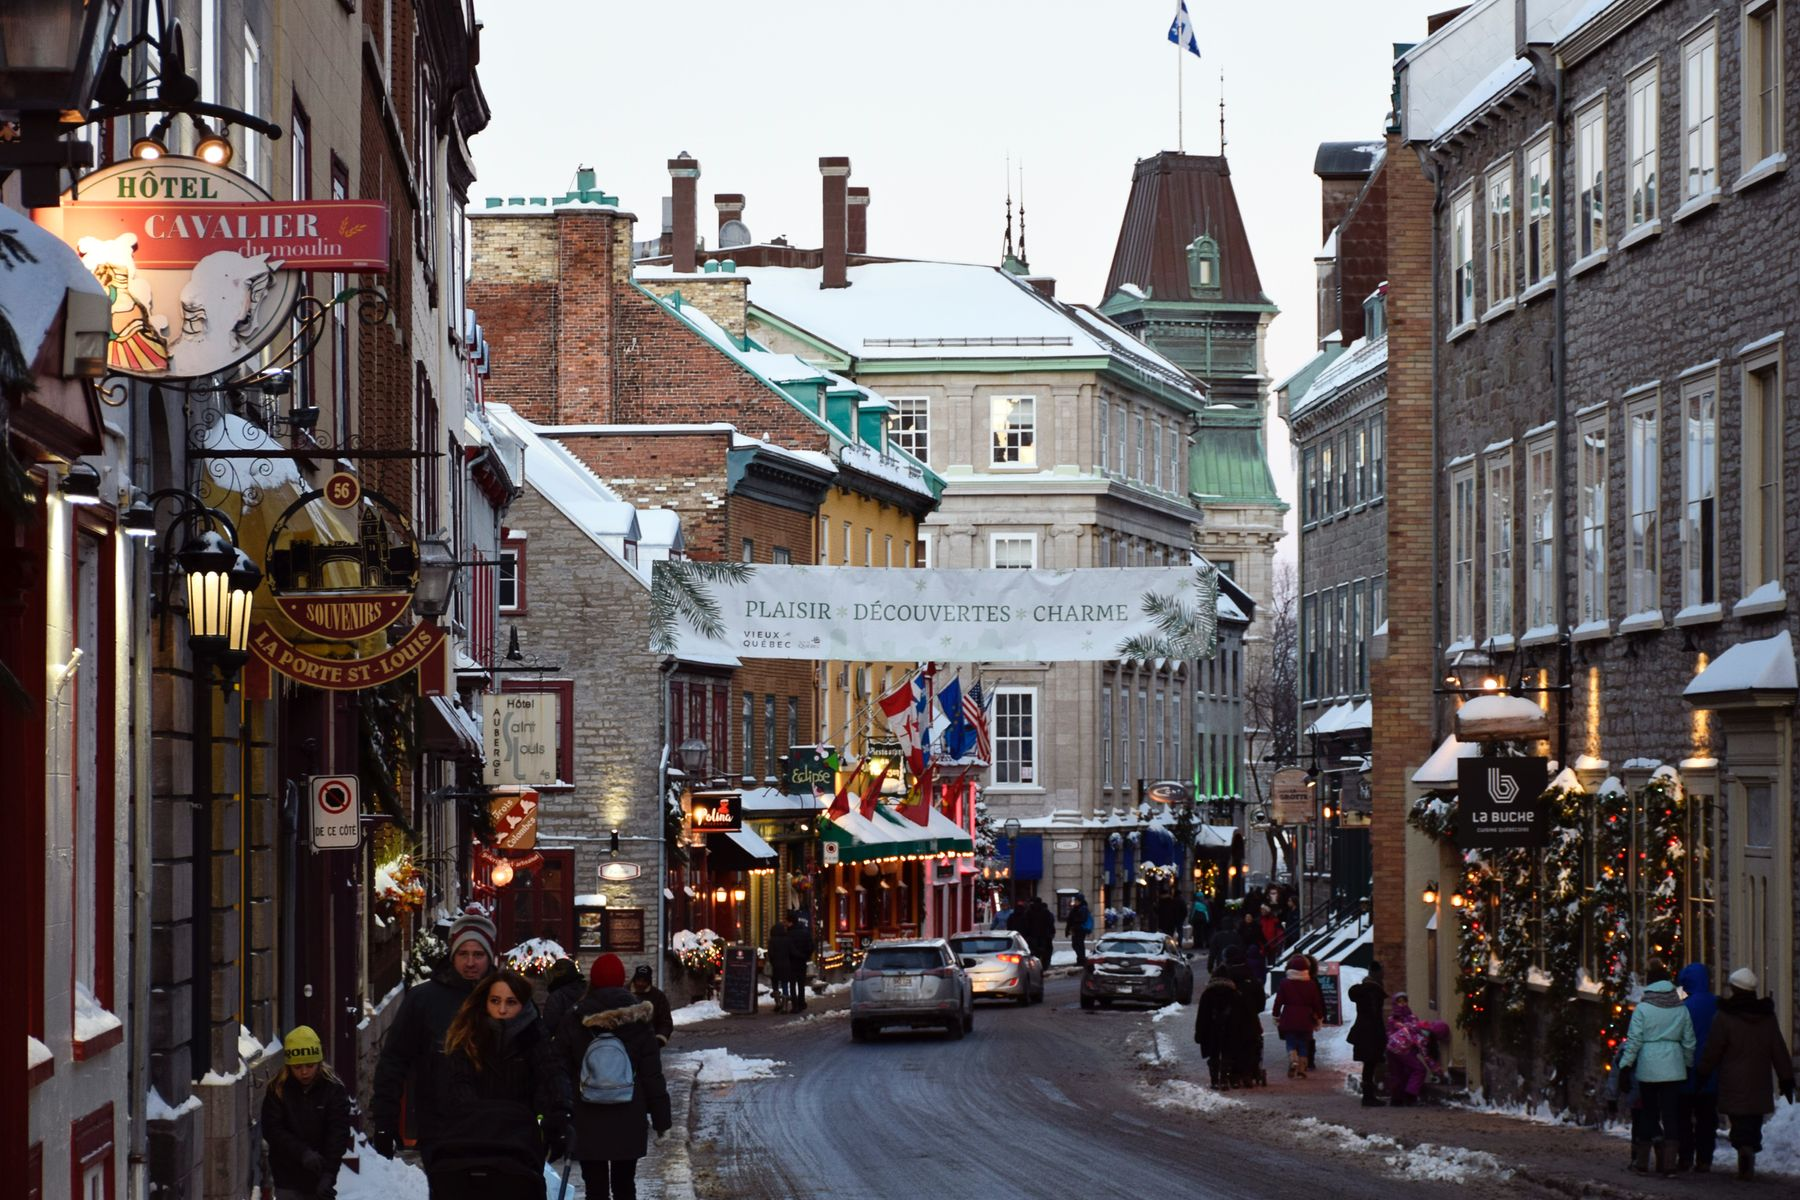 Quebec City streets in Vieux Quebec in winter during the day